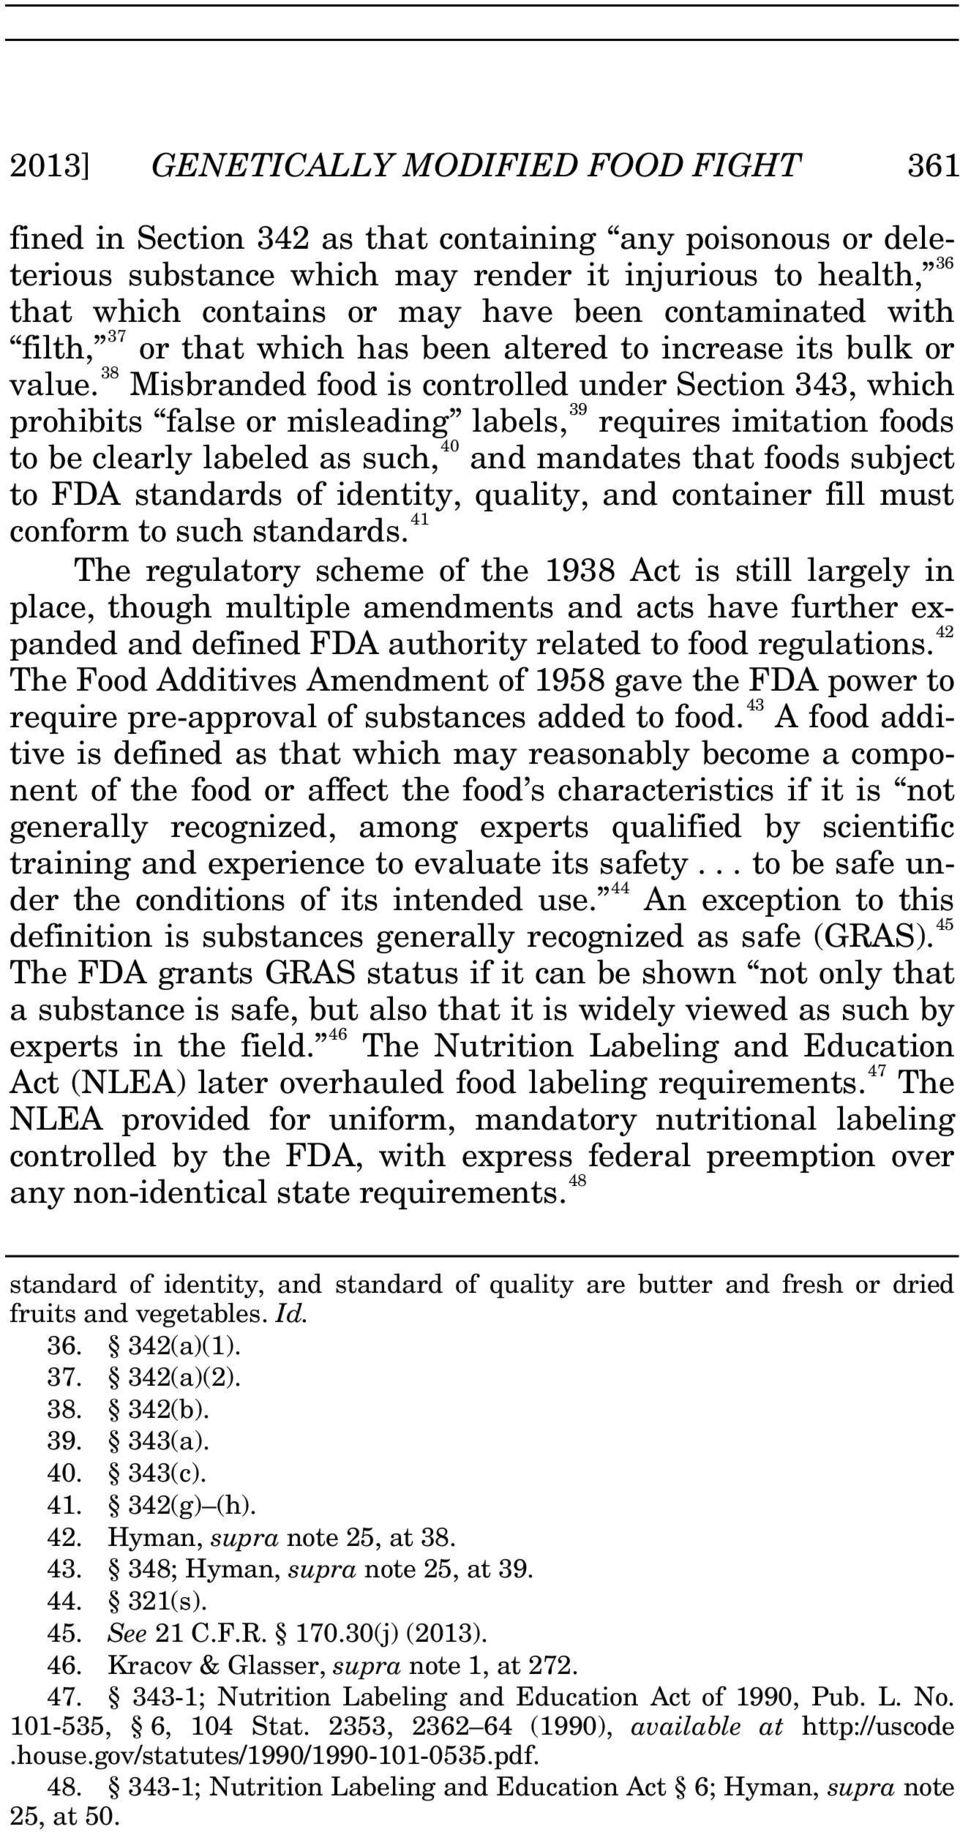 38 Misbranded food is controlled under Section 343, which prohibits false or misleading labels, 39 requires imitation foods to be clearly labeled as such, 40 and mandates that foods subject to FDA